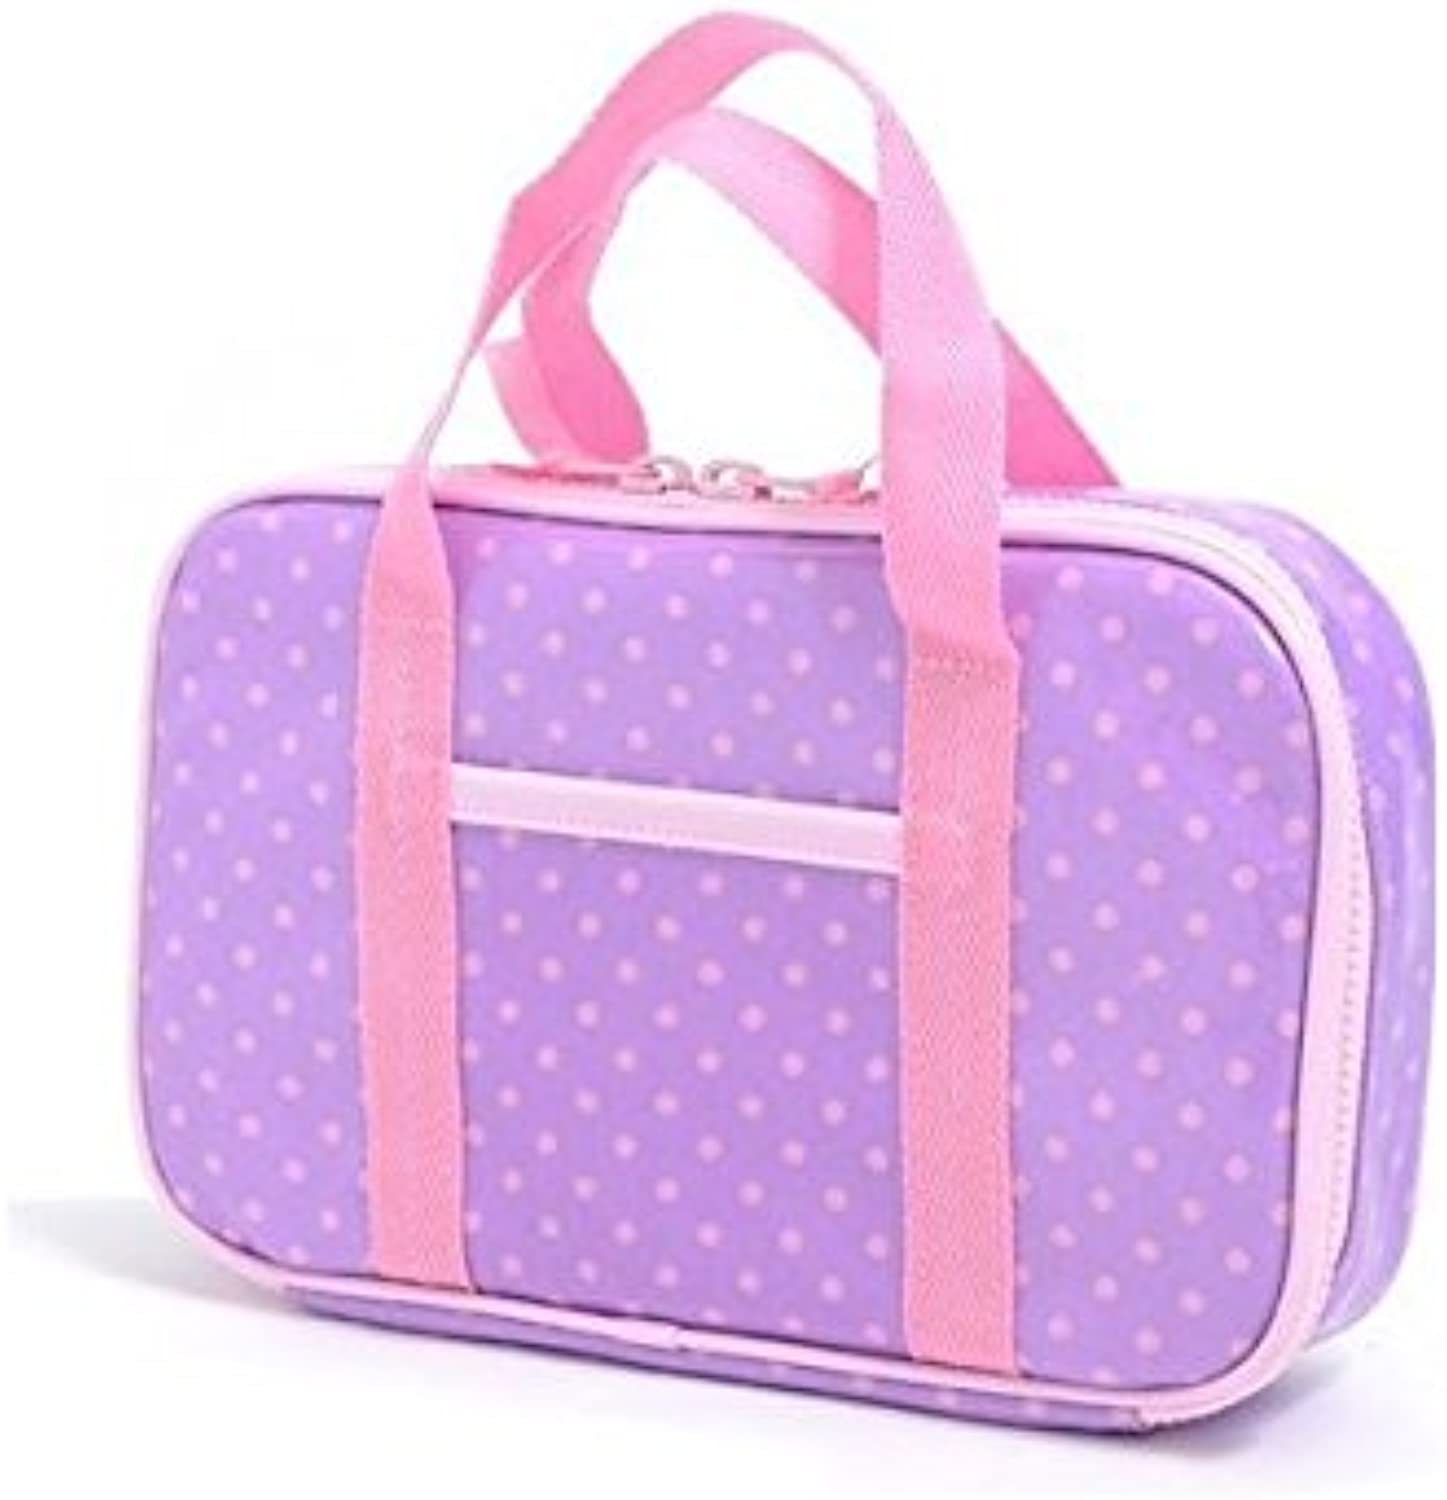 Made in Japan N2302310 (pink dots on purple ground) Kids Sewing, sewing kit, Misasa polka dot rated on style (japan import)